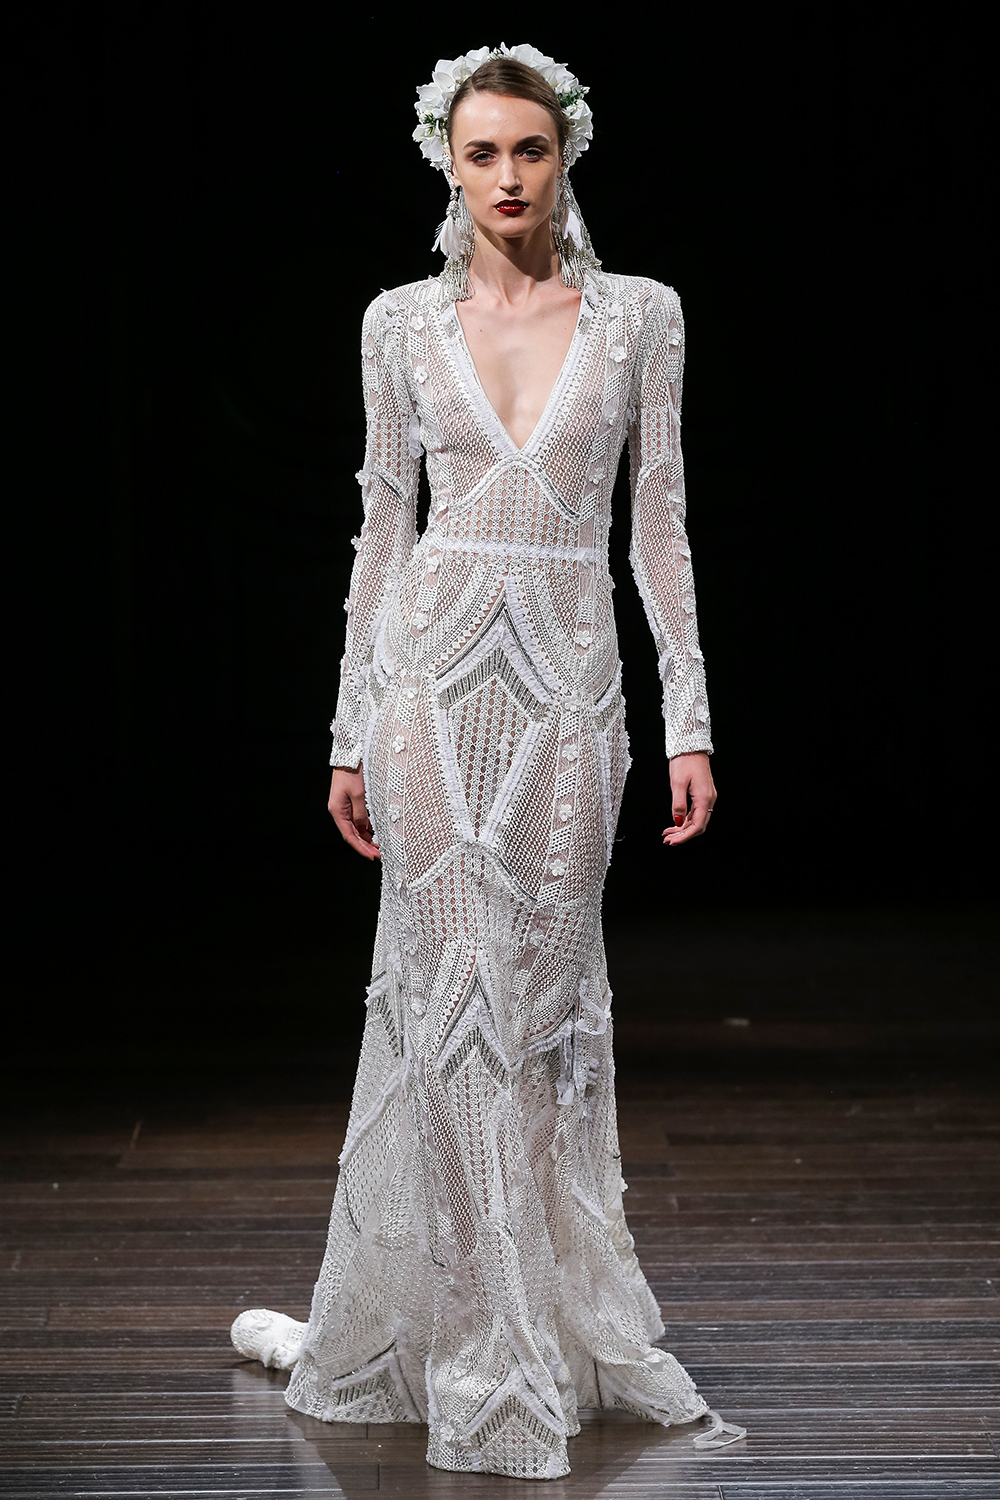 BROOKLYN - Naeem Khan 2018 Bridal Collection. www.theweddingnotebook.com